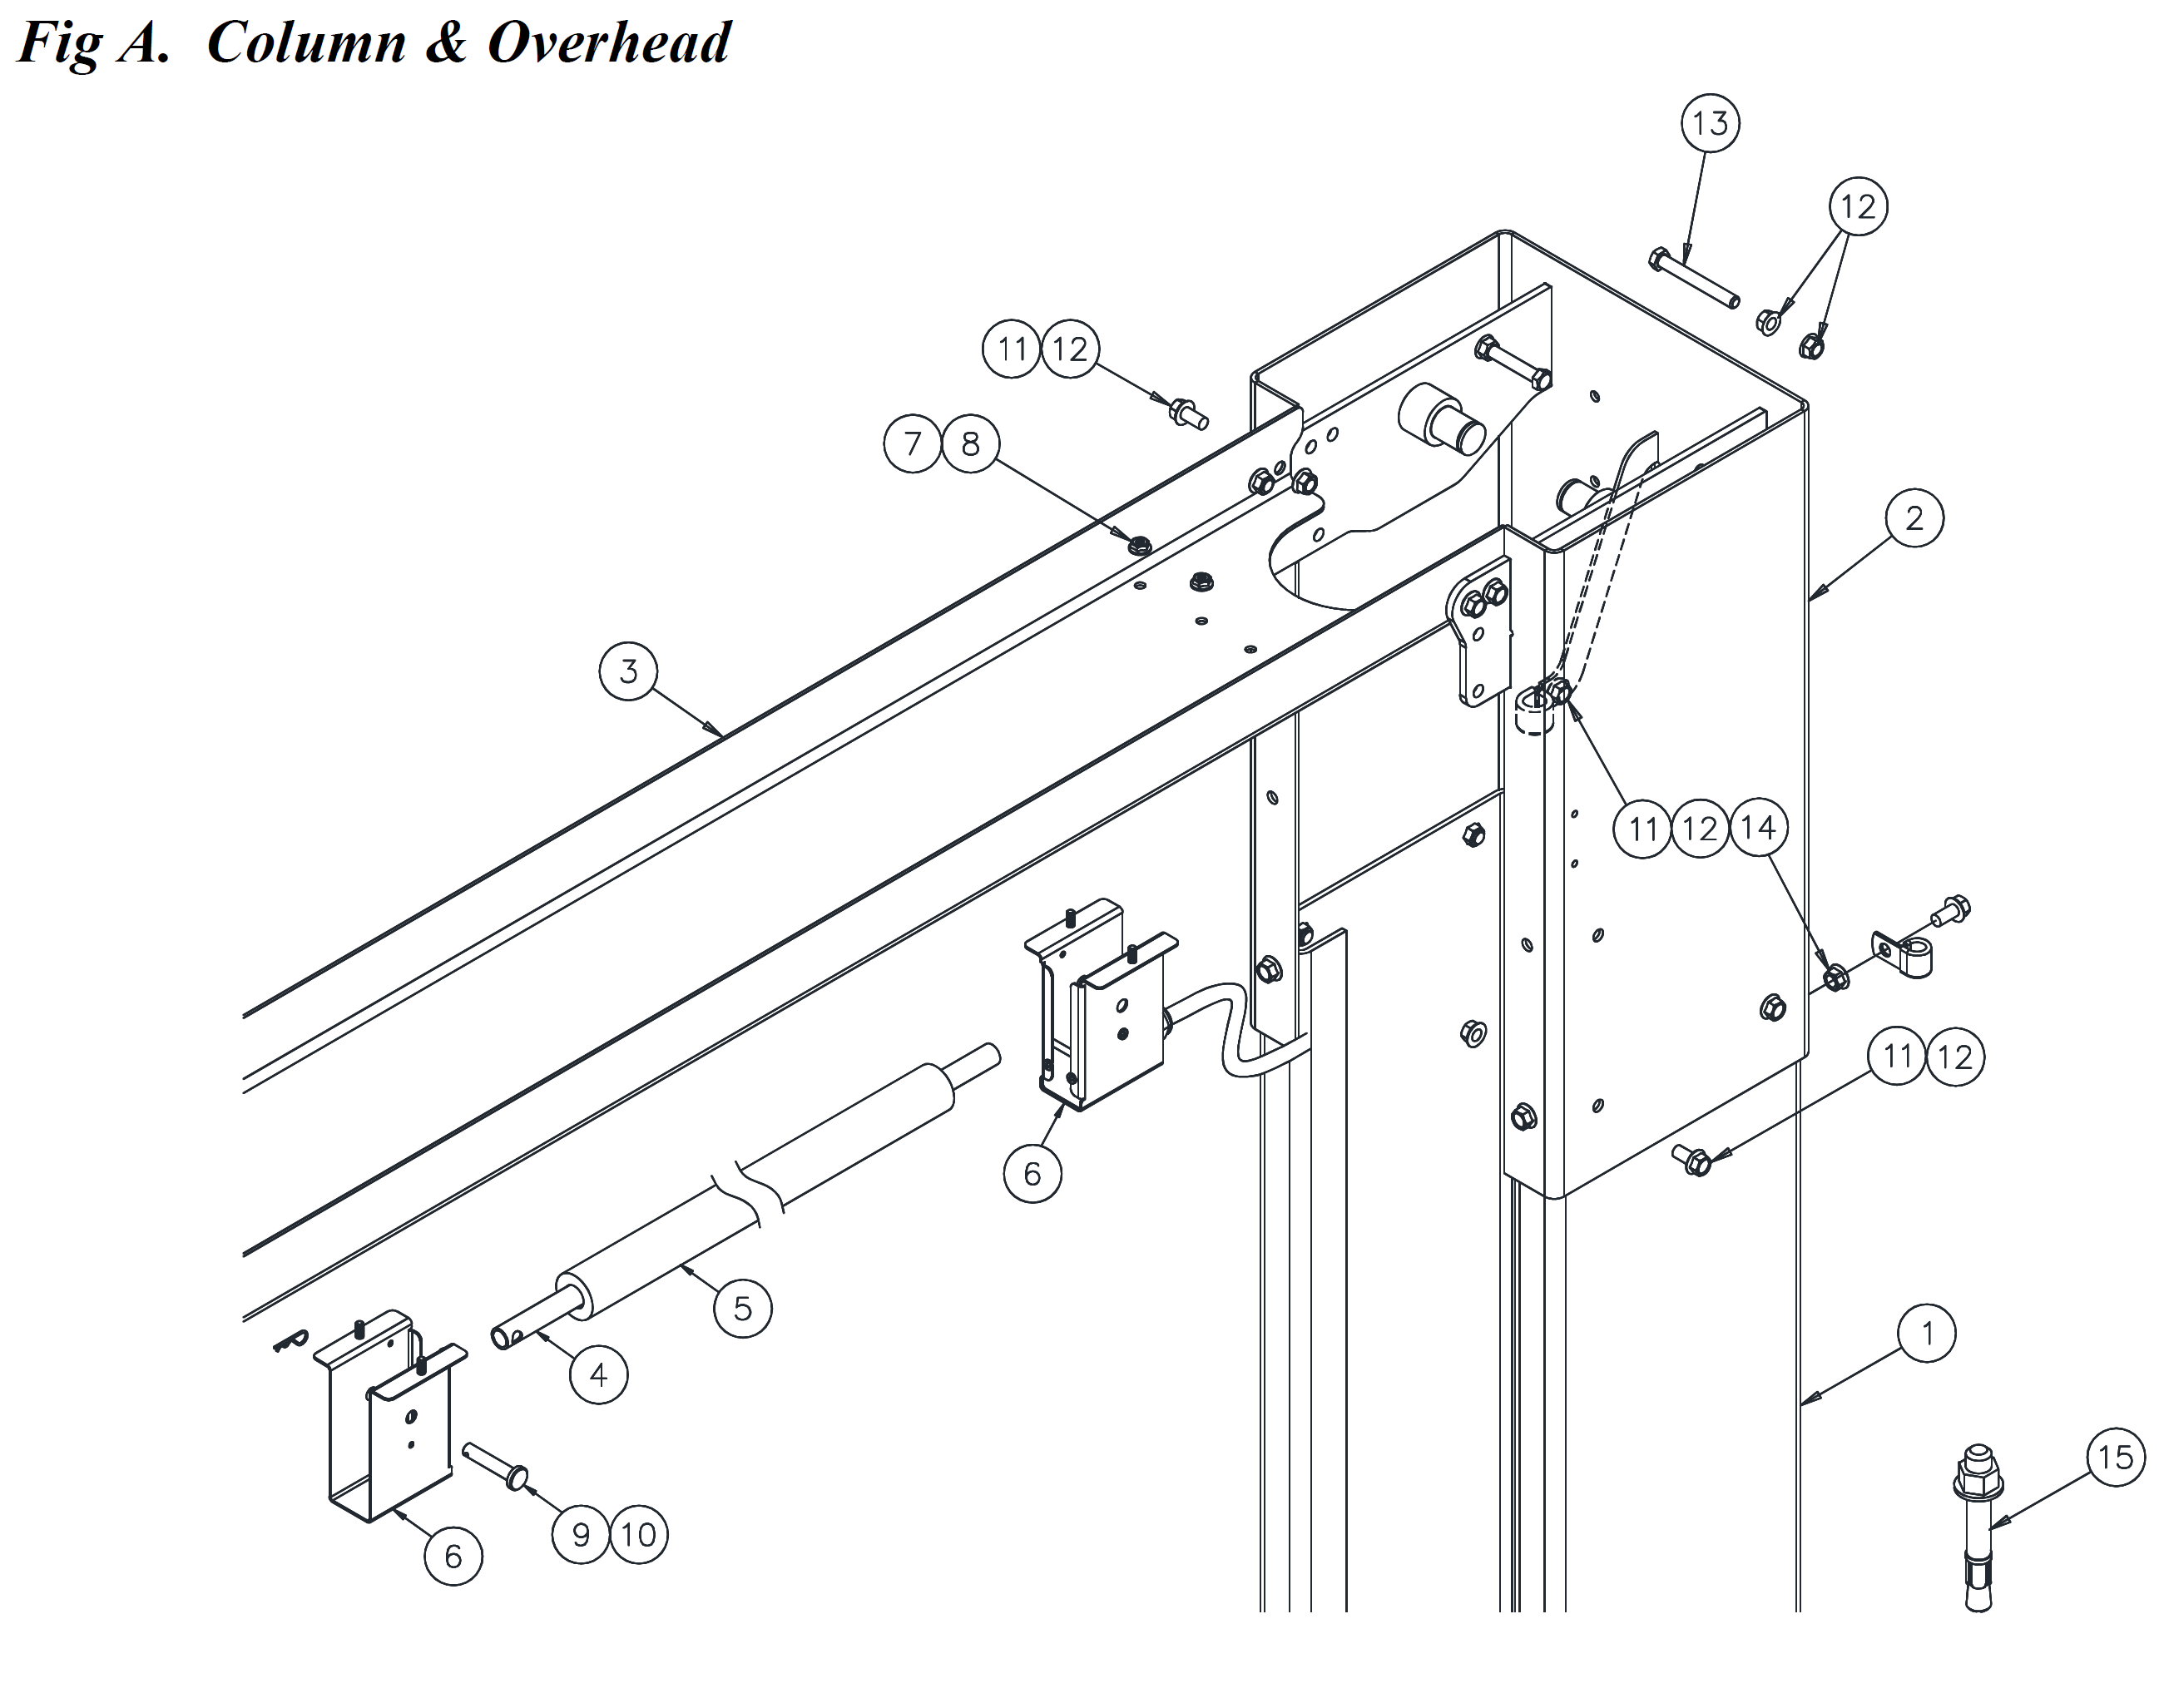 cl10-column-and-overhead-diagram-ii.png